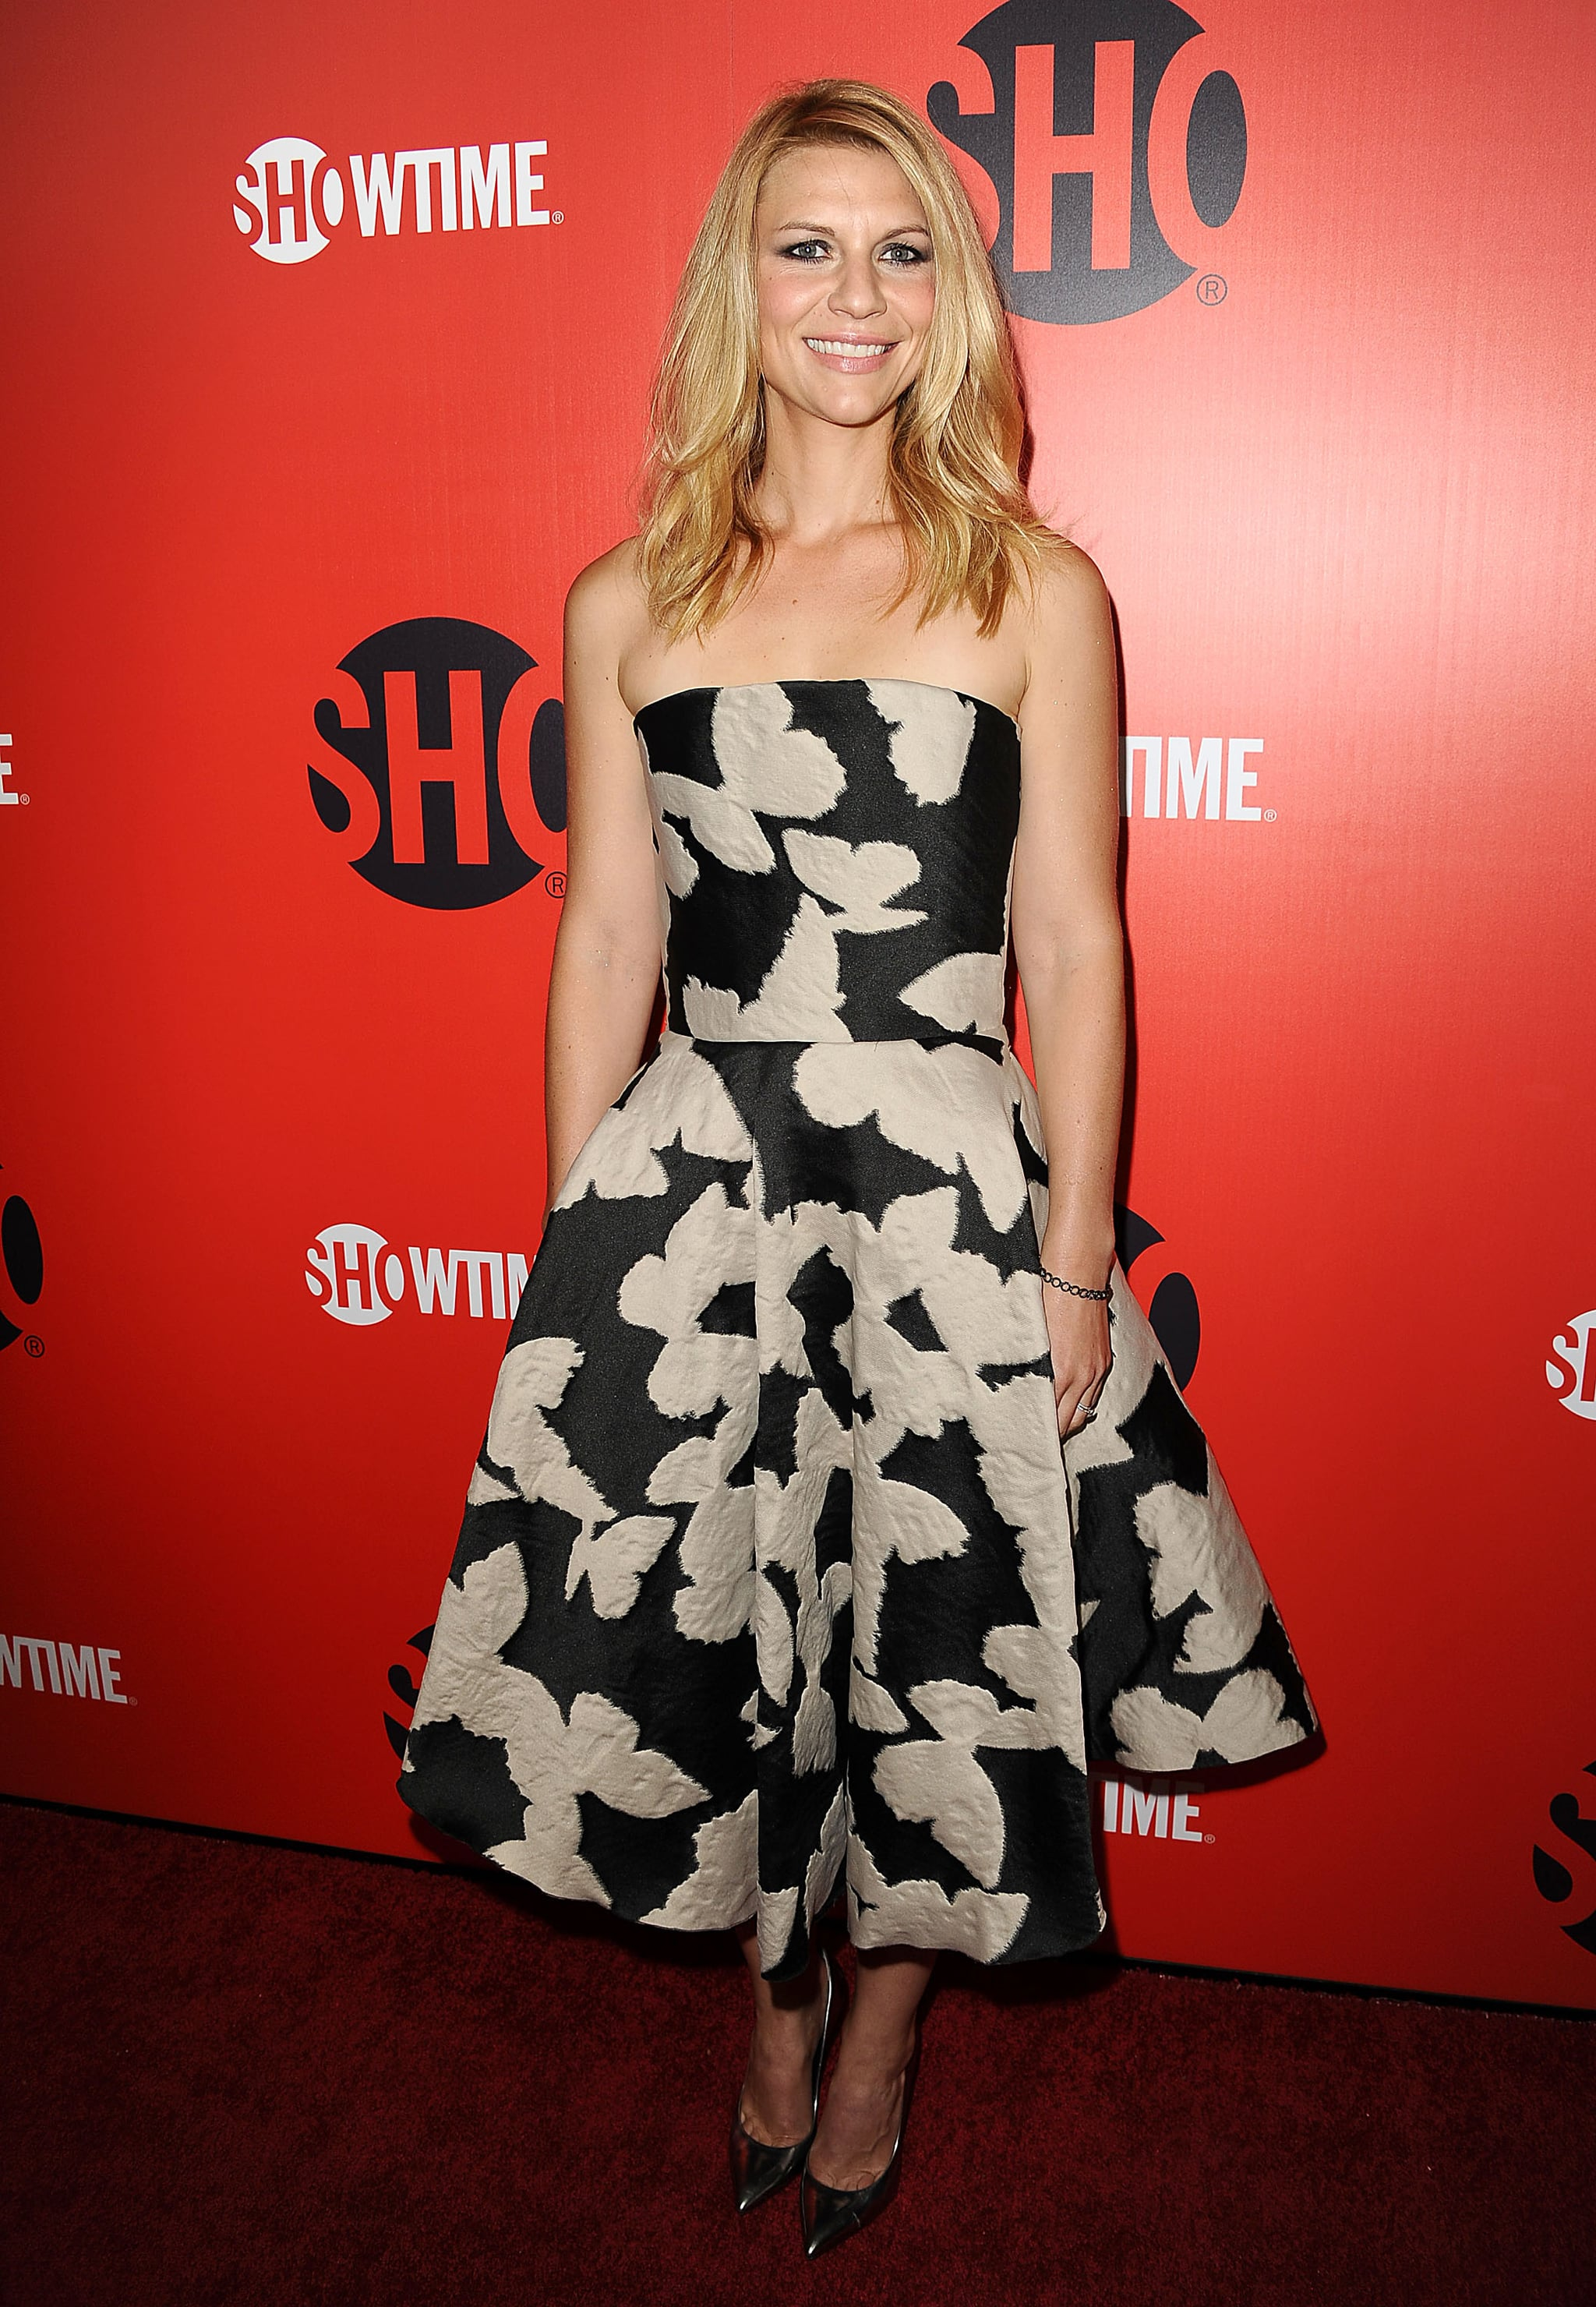 Claire Danes got glam in a strapless, printed fit-and-flare dress, metallic pumps, and Dana Rebecca bracelets at the Showtime 2013 Emmy Eve Soiree in LA.